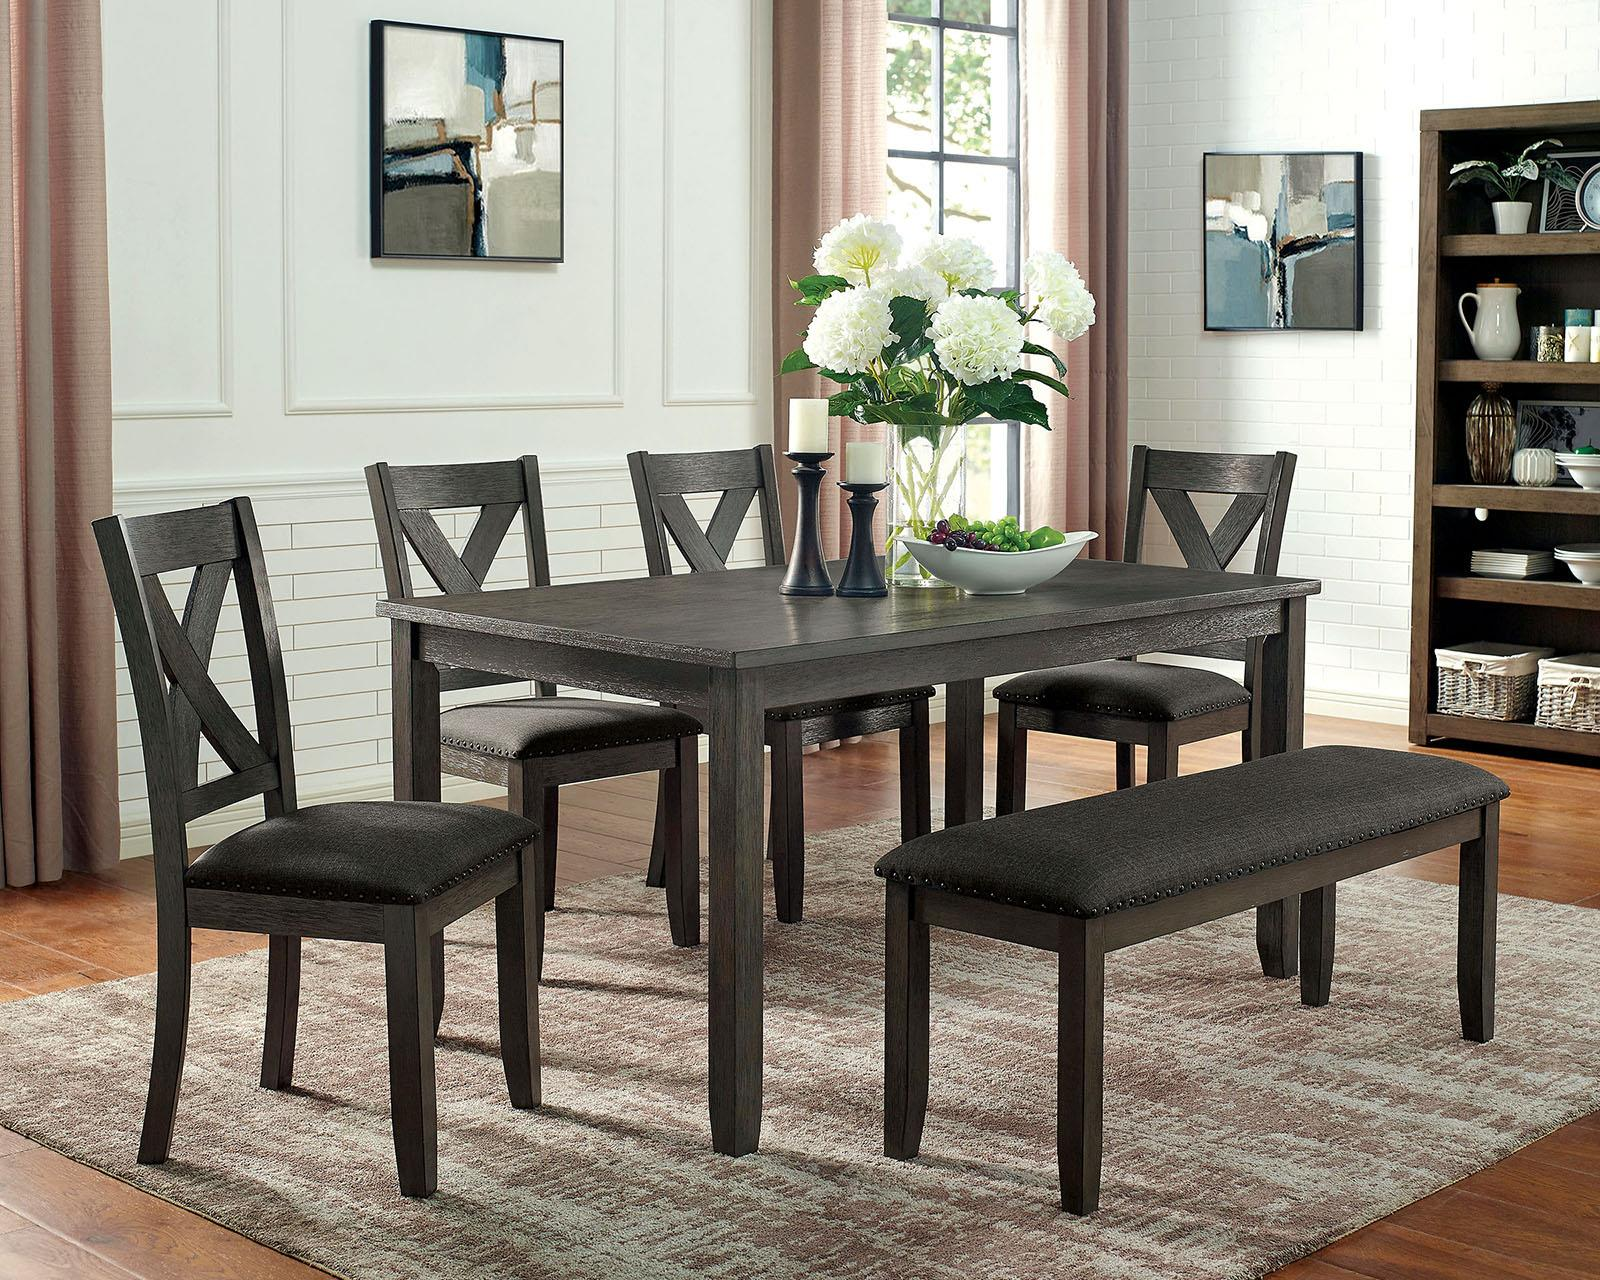 Cilgerran I Dark Gray 6PC Dining Set w/ Bench - KTL Furniture